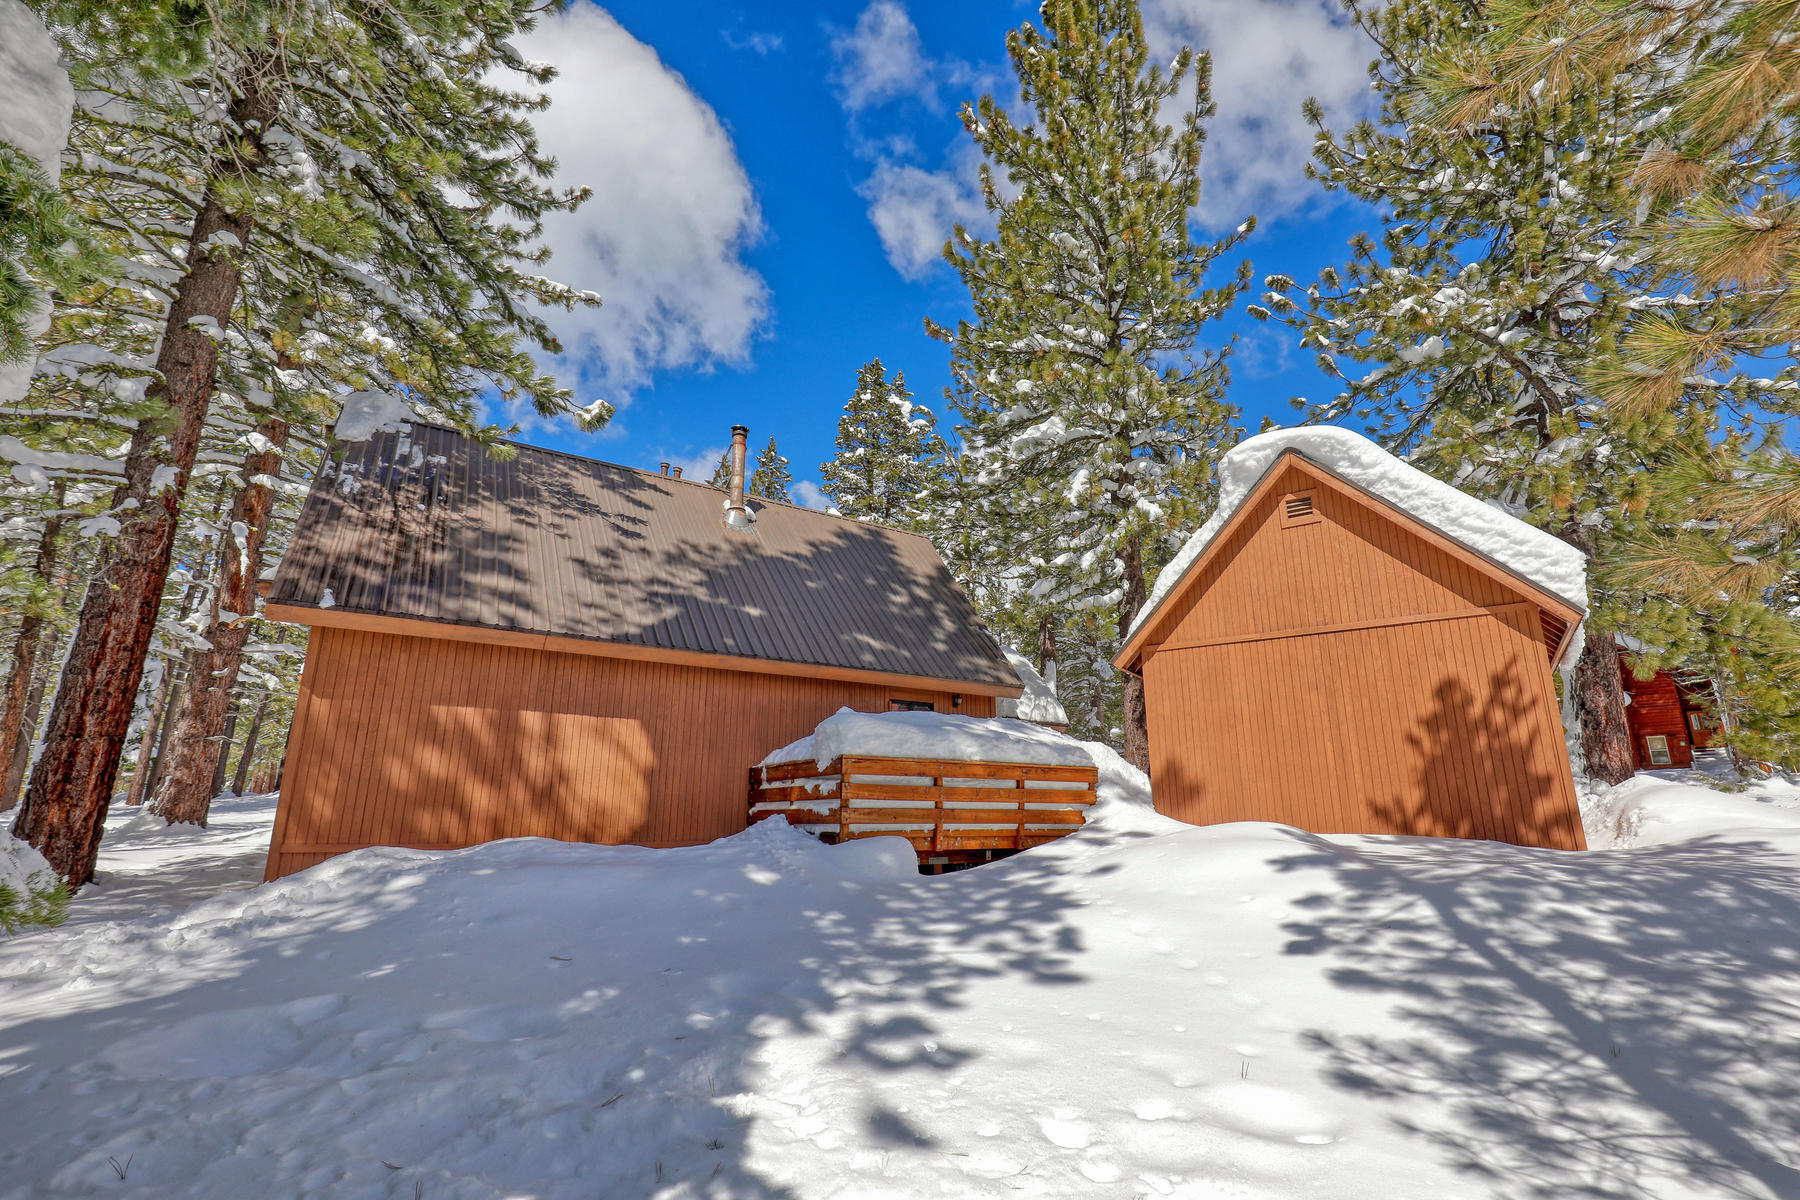 Additional photo for property listing at Cozy Ski cabin near Rec Center 11894 Oslo Drive Truckee, California 96161 United States